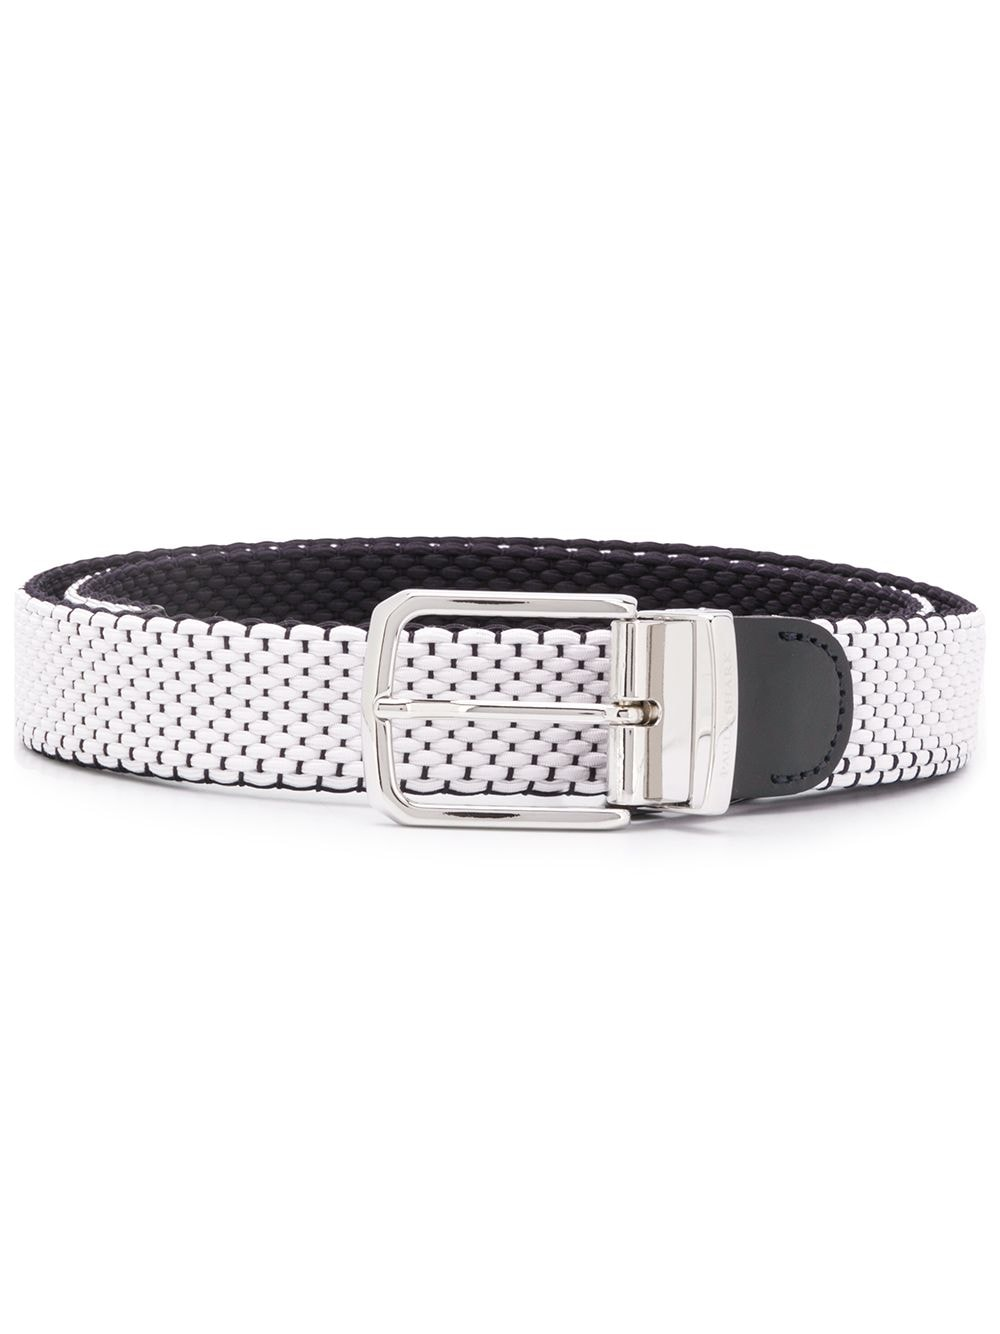 White and navy woven belt from Paul & Shark featuring leather trims, a woven design, a silver-tone buckle fastening and an adjustable fit